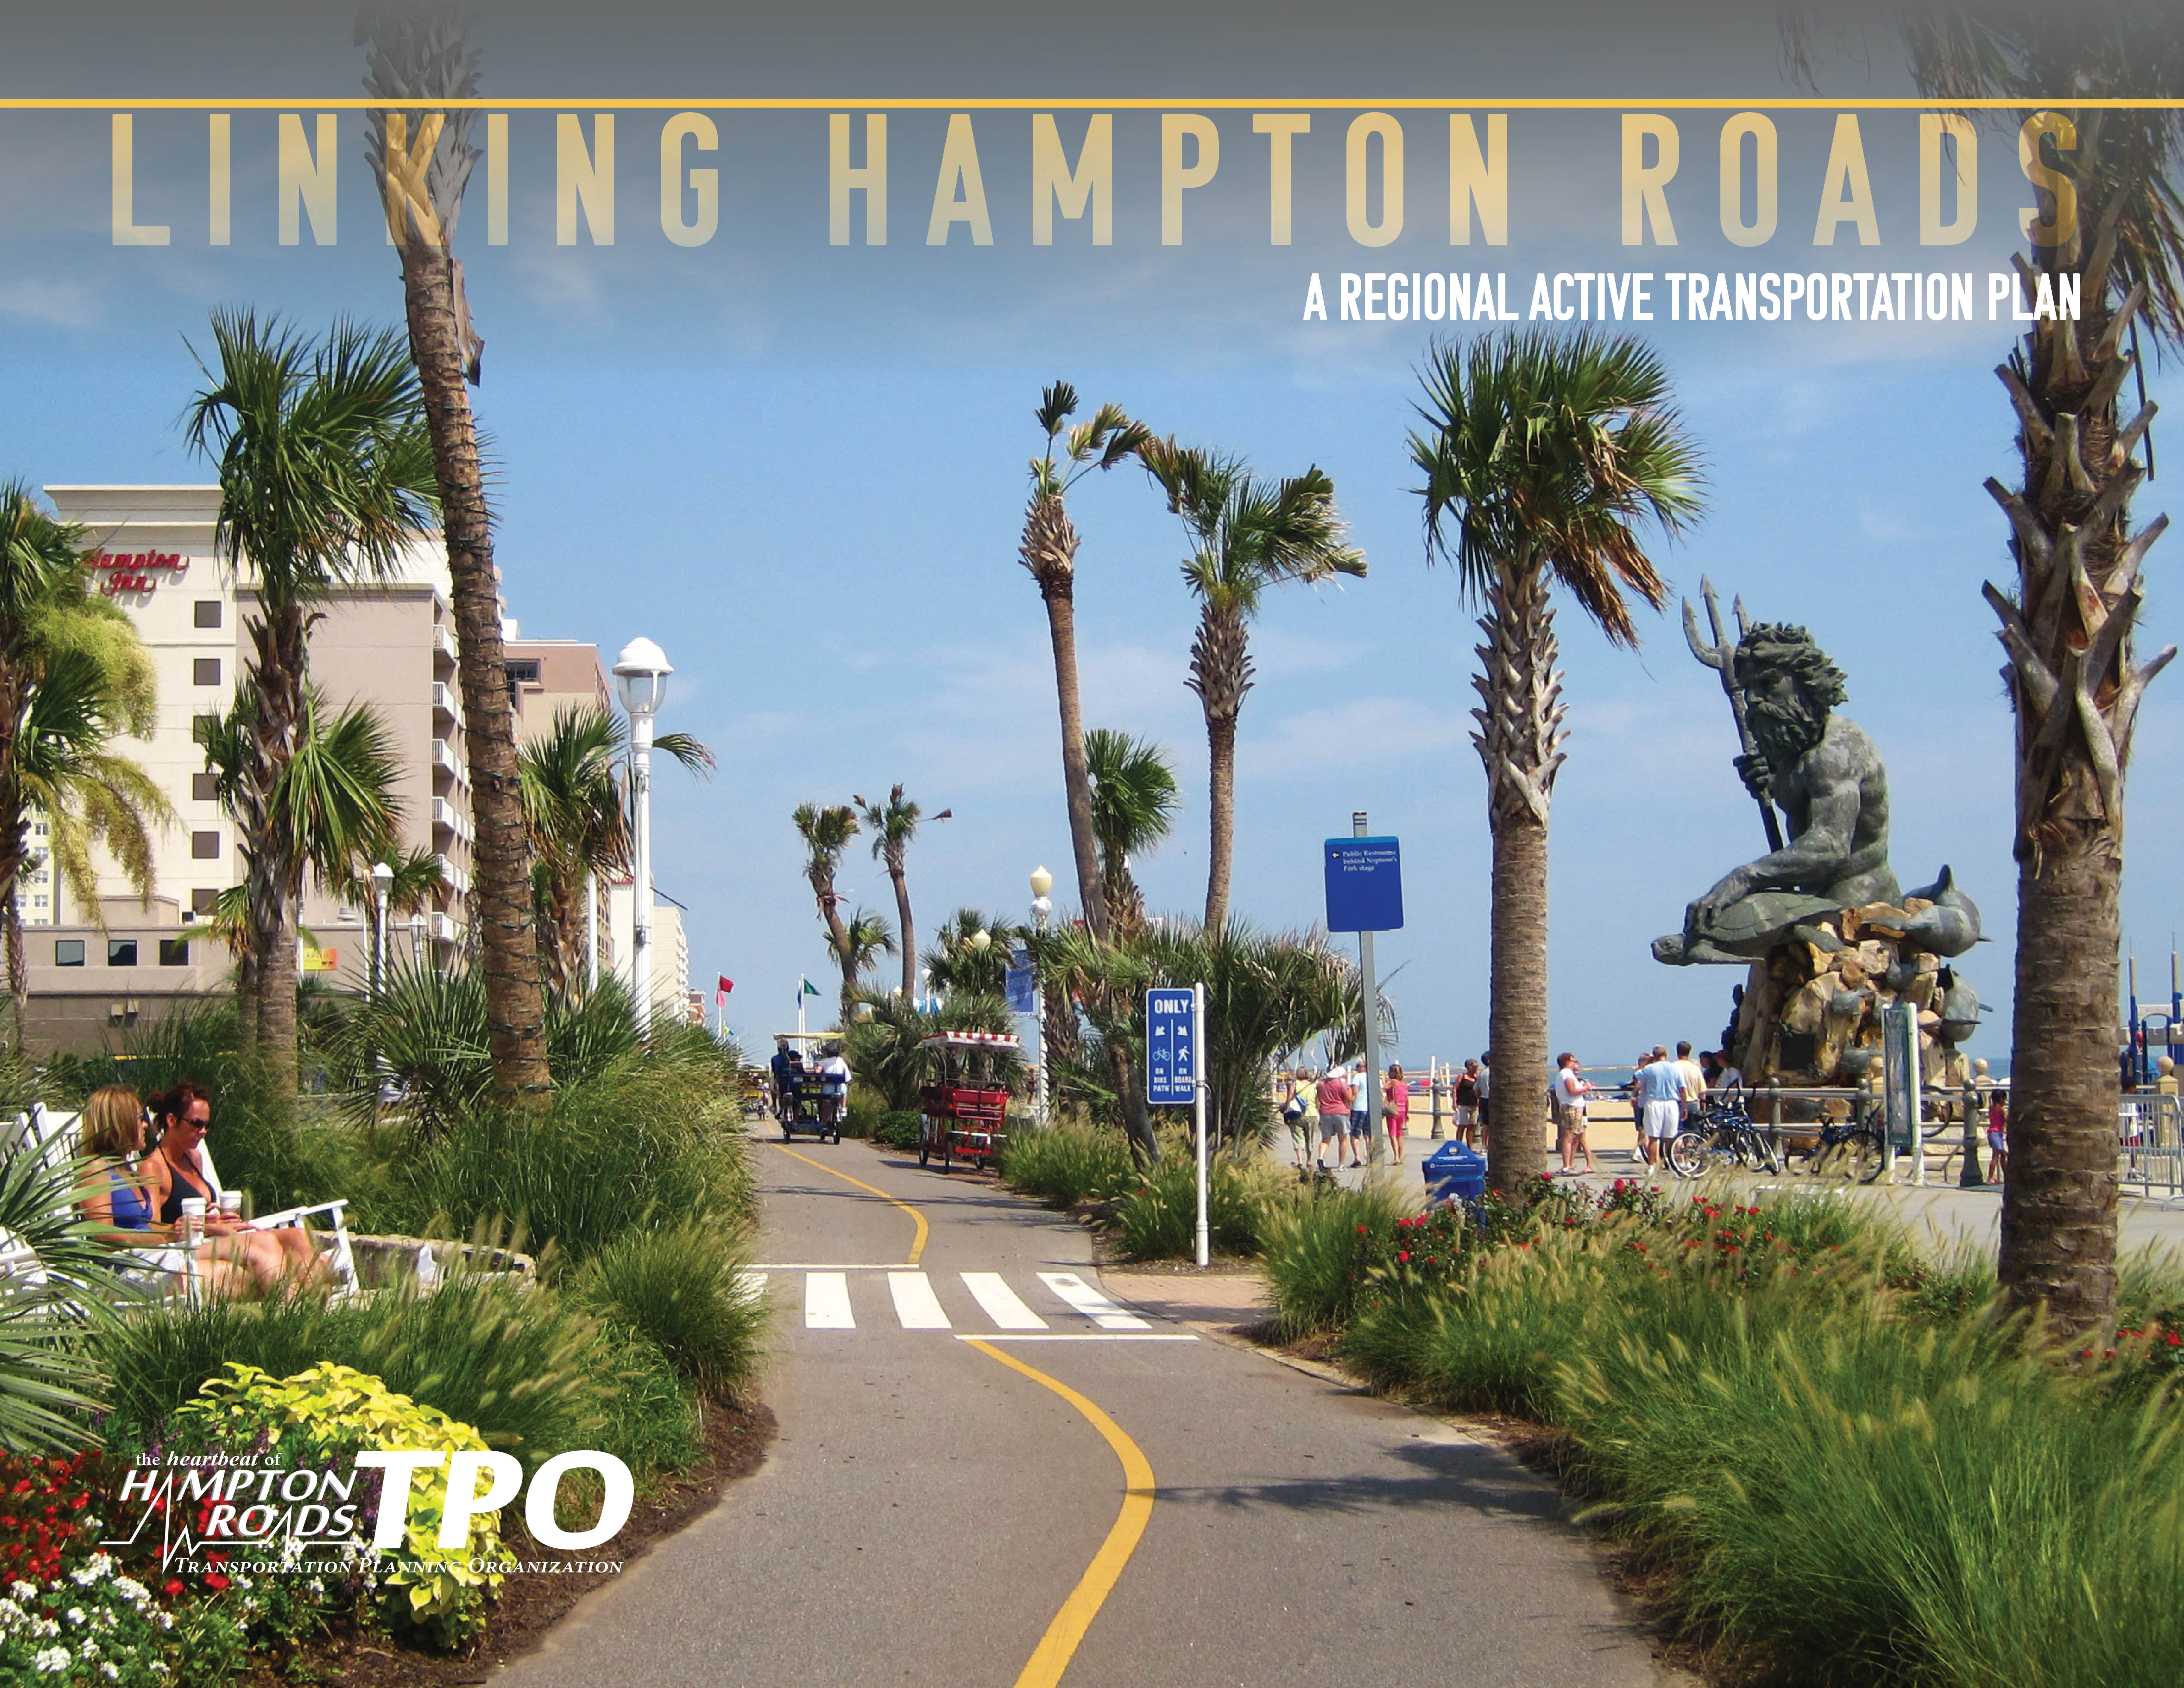 Cover of Regional Active Transportation Plan, Linking Hampton Roads